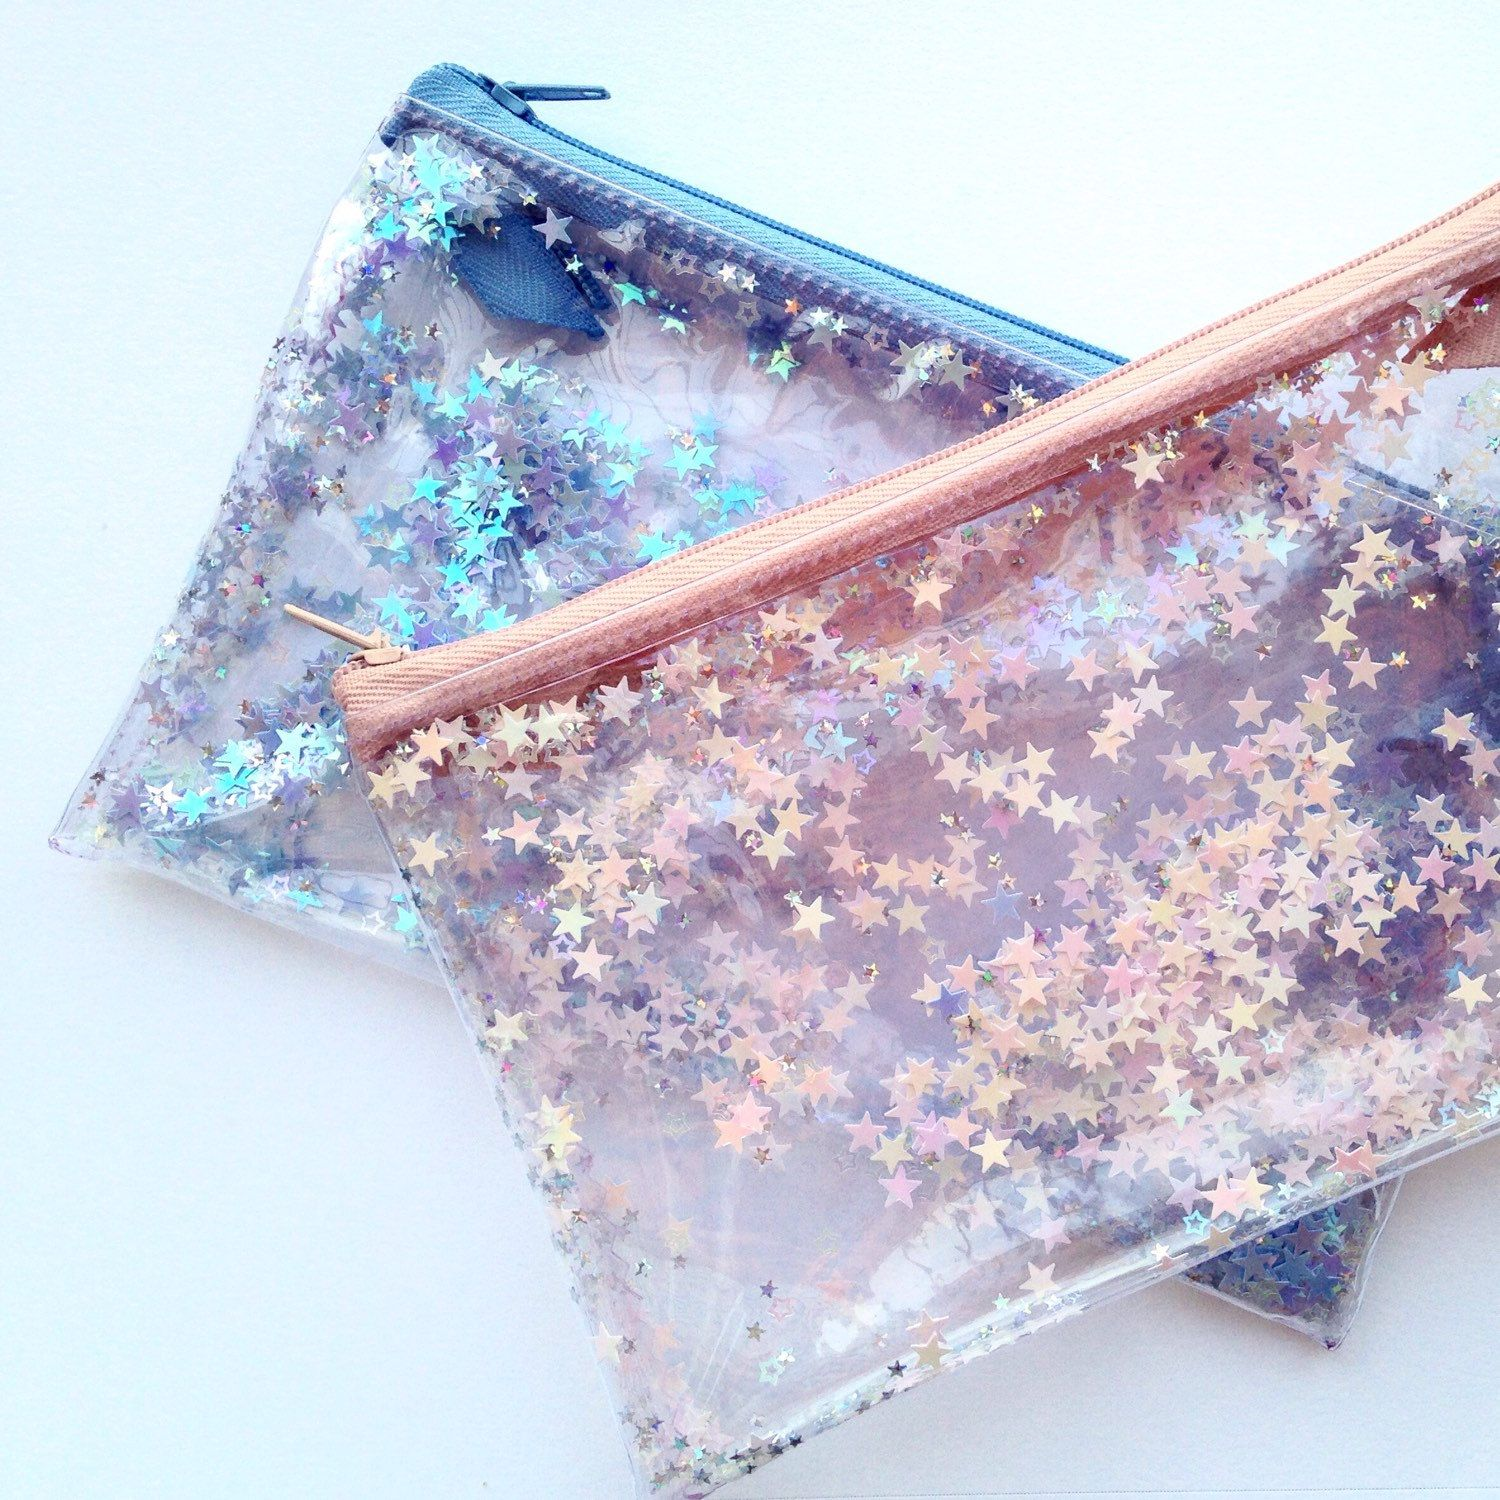 Leather Accent Tag - Sky Blue Candy Pink Stars by VIDA VIDA v60xe0